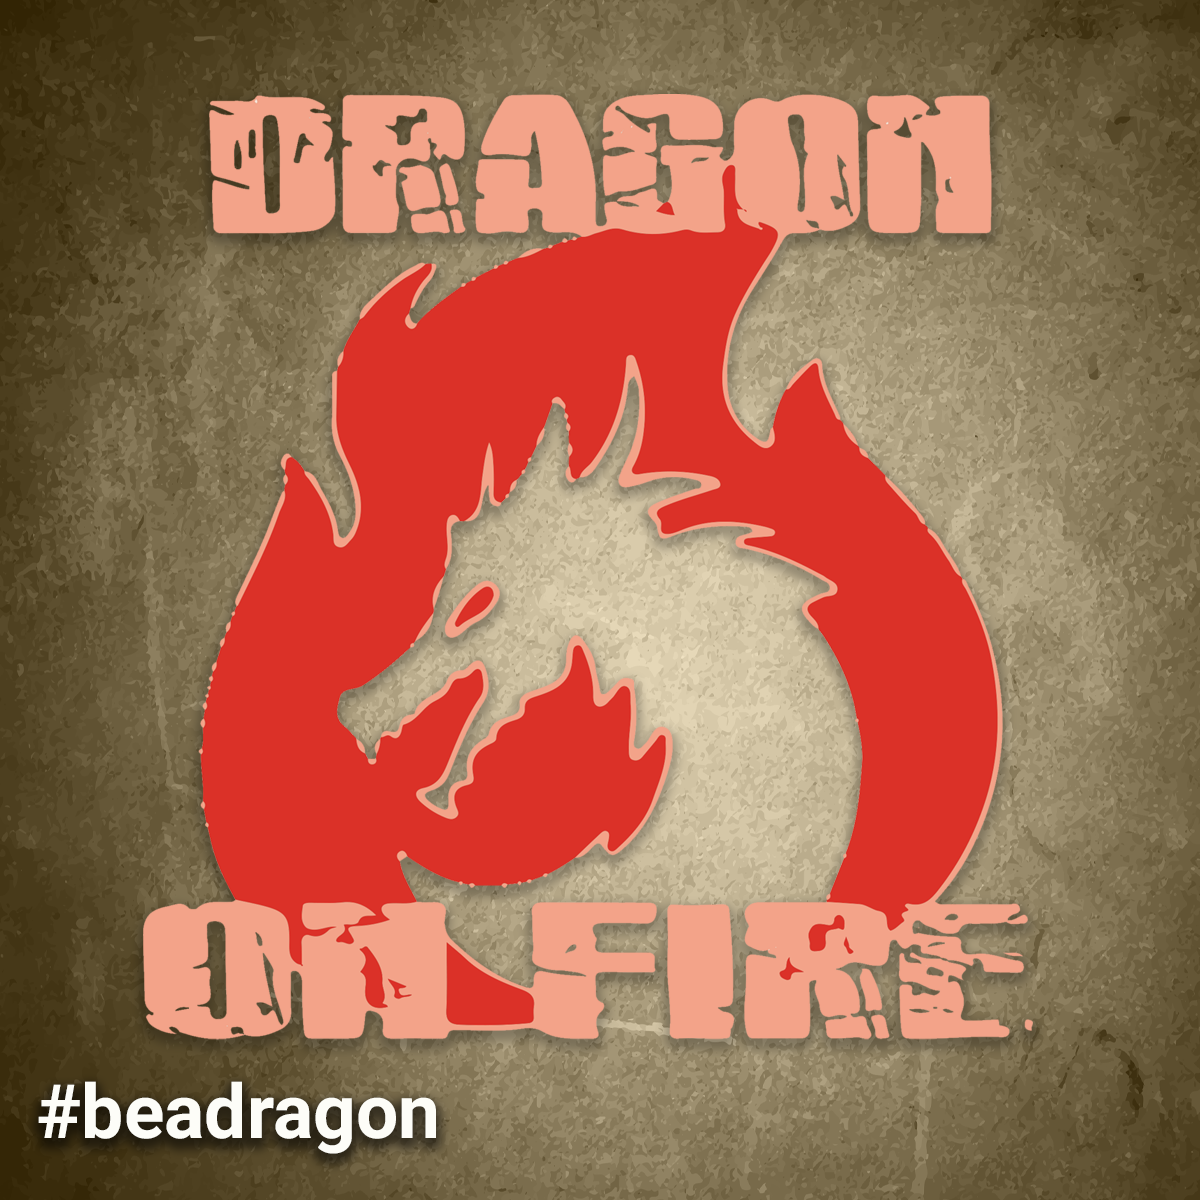 Dragon Spirits Marketing - Dragon on Fire Awards